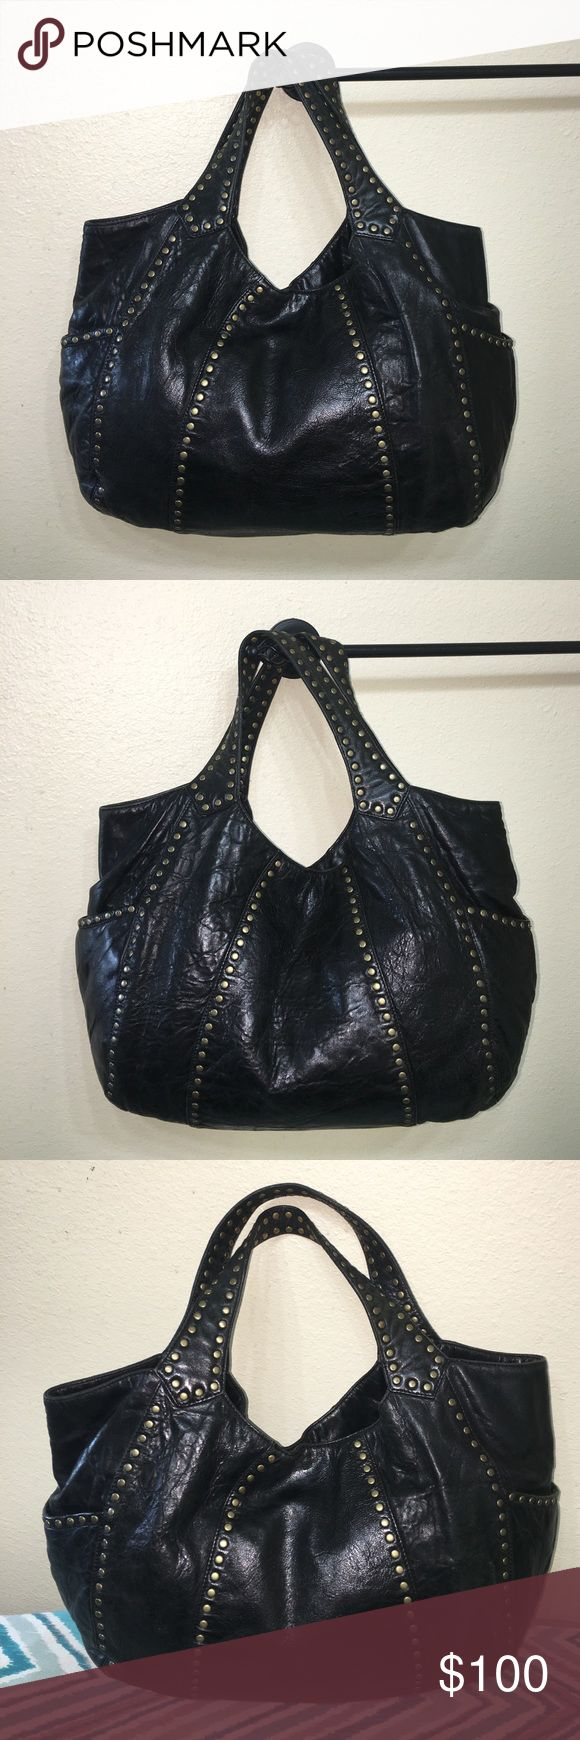 """Authentic Kooba black leather studded Purse tote Authentic Kooba black leather studded Purse Handbag tote measures 17"""" long 12"""" tall  5"""" wide strap drop 6"""" very good condition light wear super nice purse Kooba Bags Shoulder Bags"""